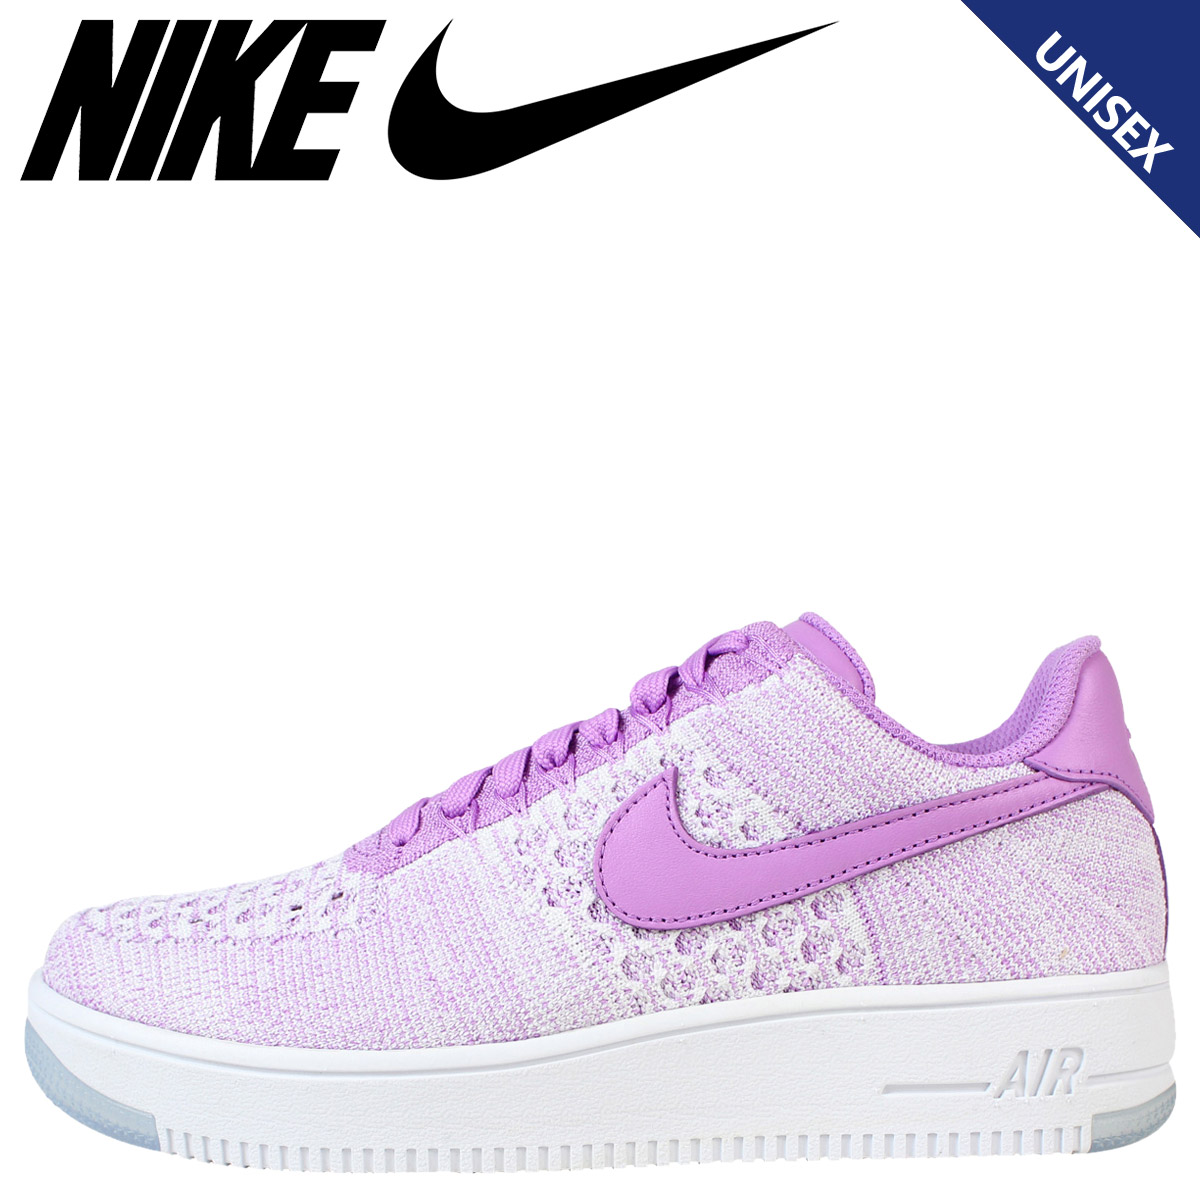 NIKE Nike Air Force sneakers Womens WMNS AIR FORCE 1 FLYKNIT LOW air force 1 Flint 820256 – 500 men's shoes pink